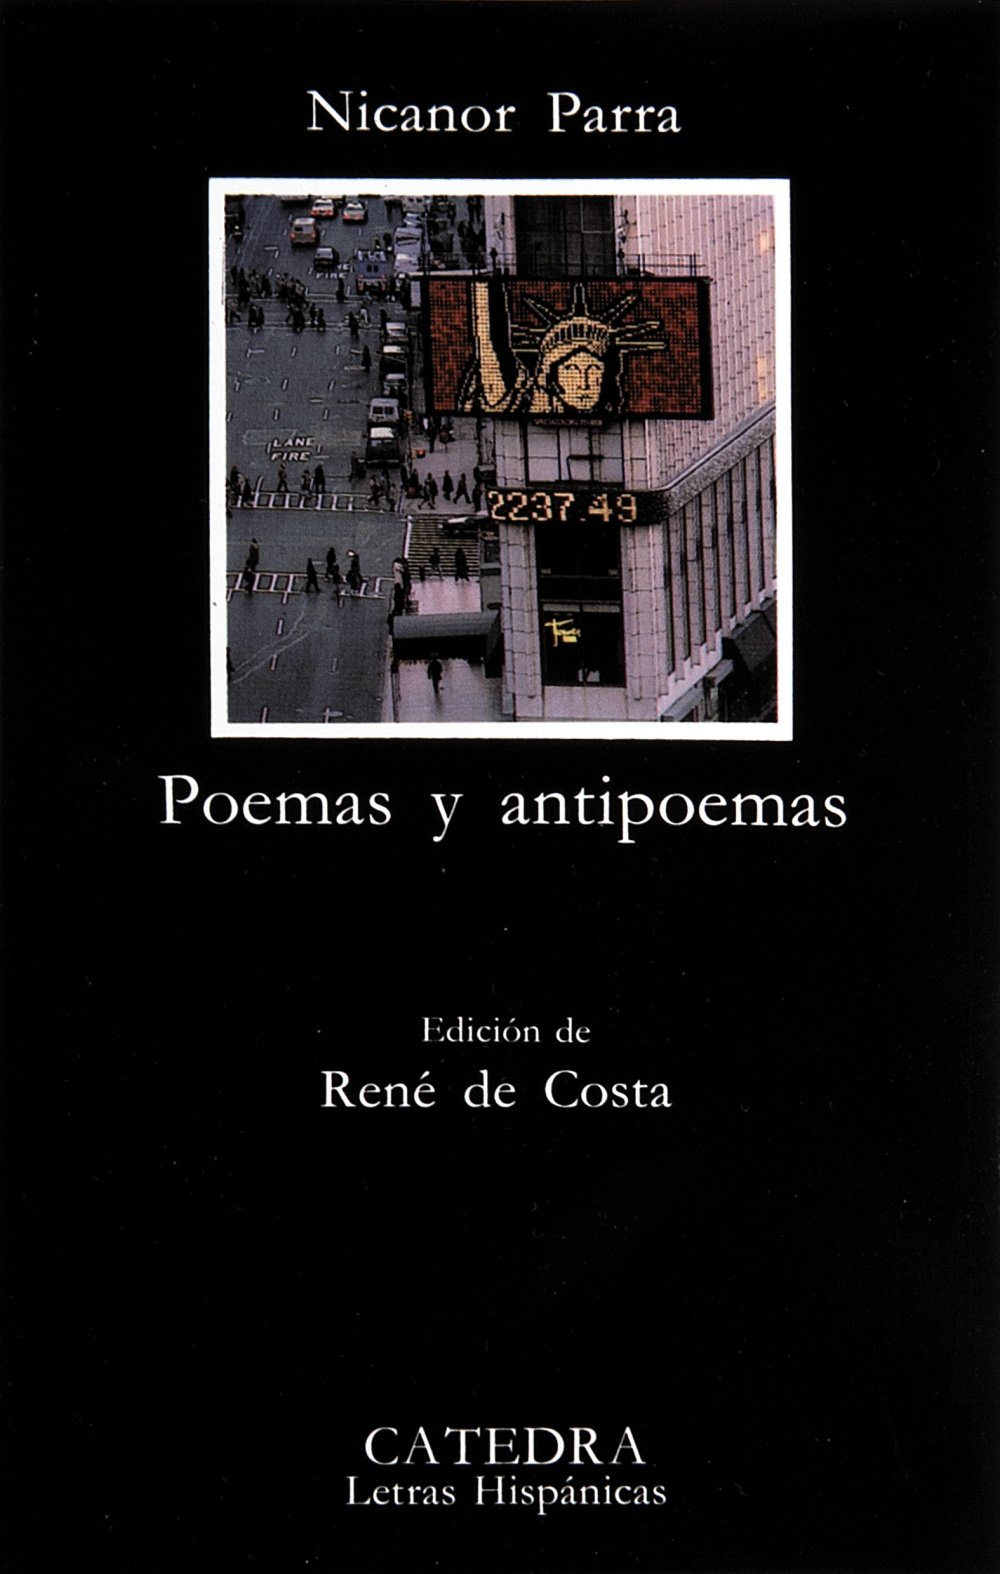 Poemas Y Antipoemas Parra Nicanor 9788437607771 Books